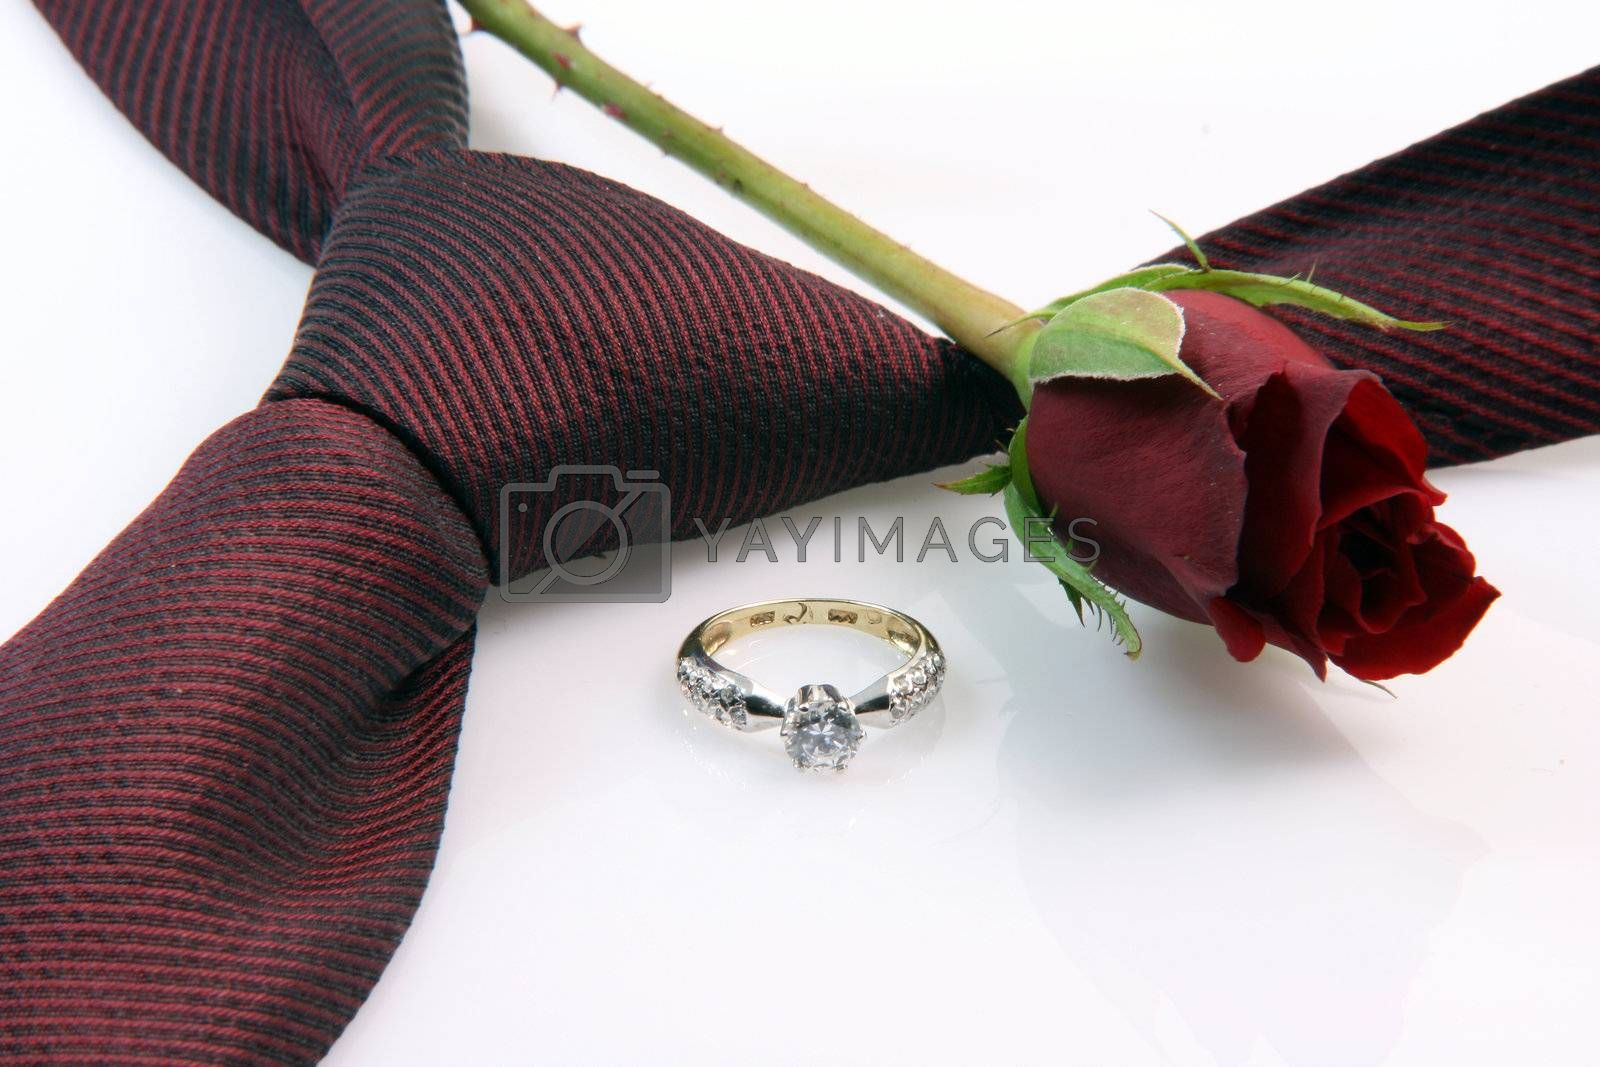 Royalty free image of anniversary and romance by forwardcom